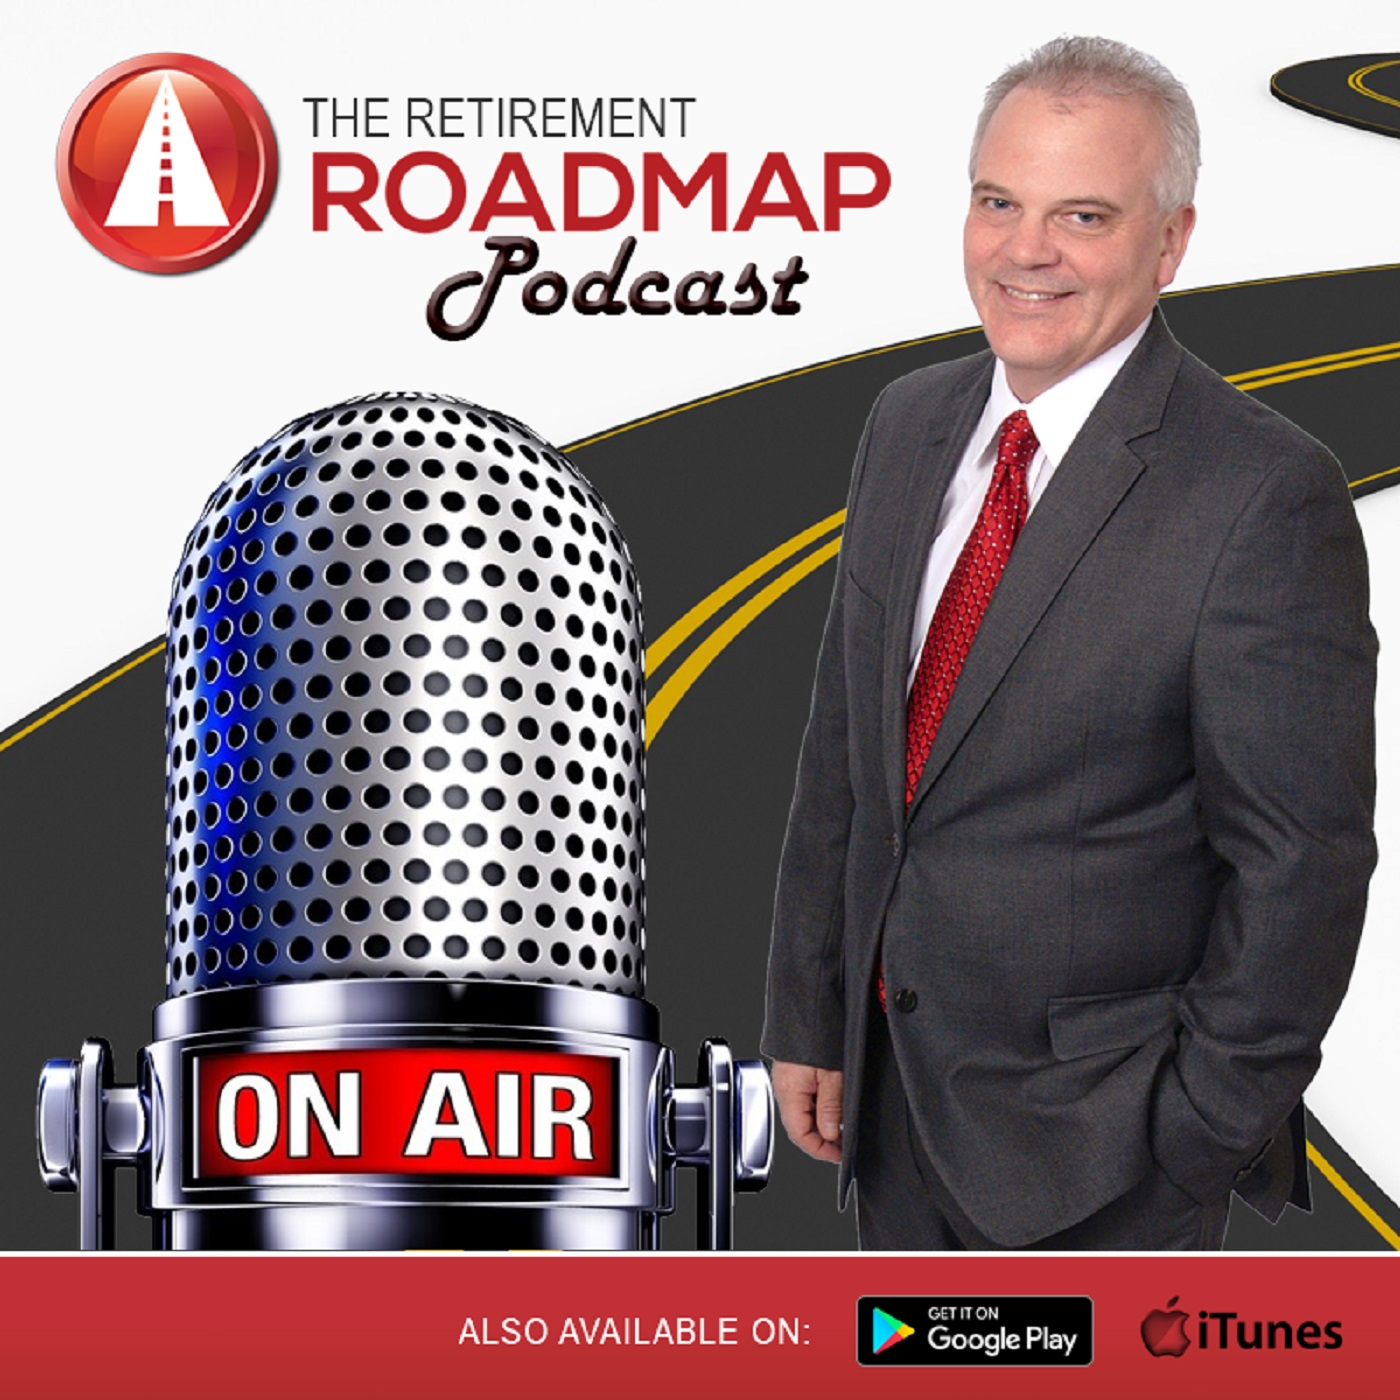 The Retirement Roadmap Podcast